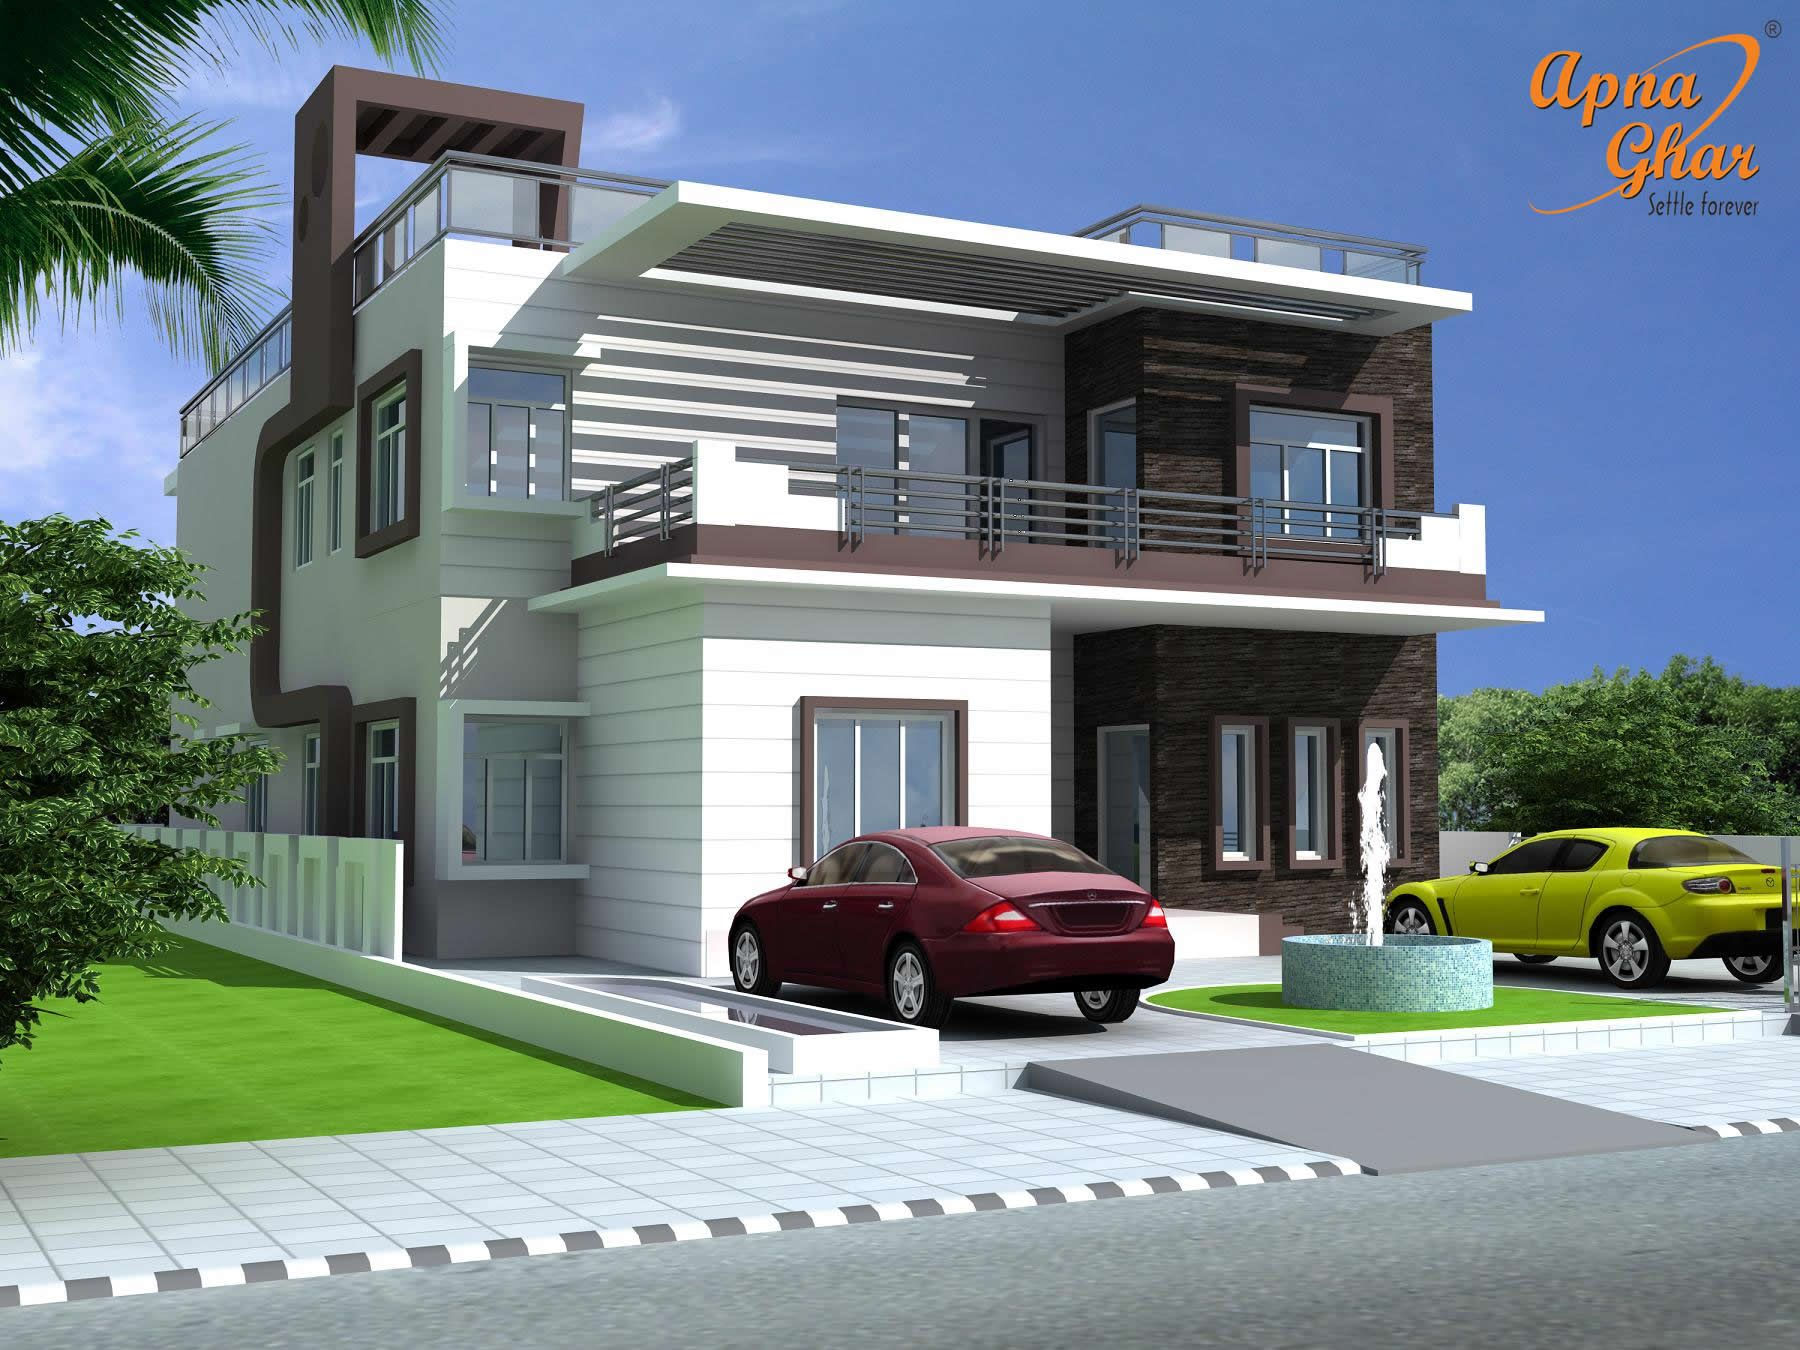 6 bedrooms duplex house design in 390m2 13m x 30m click link - Real Home Design